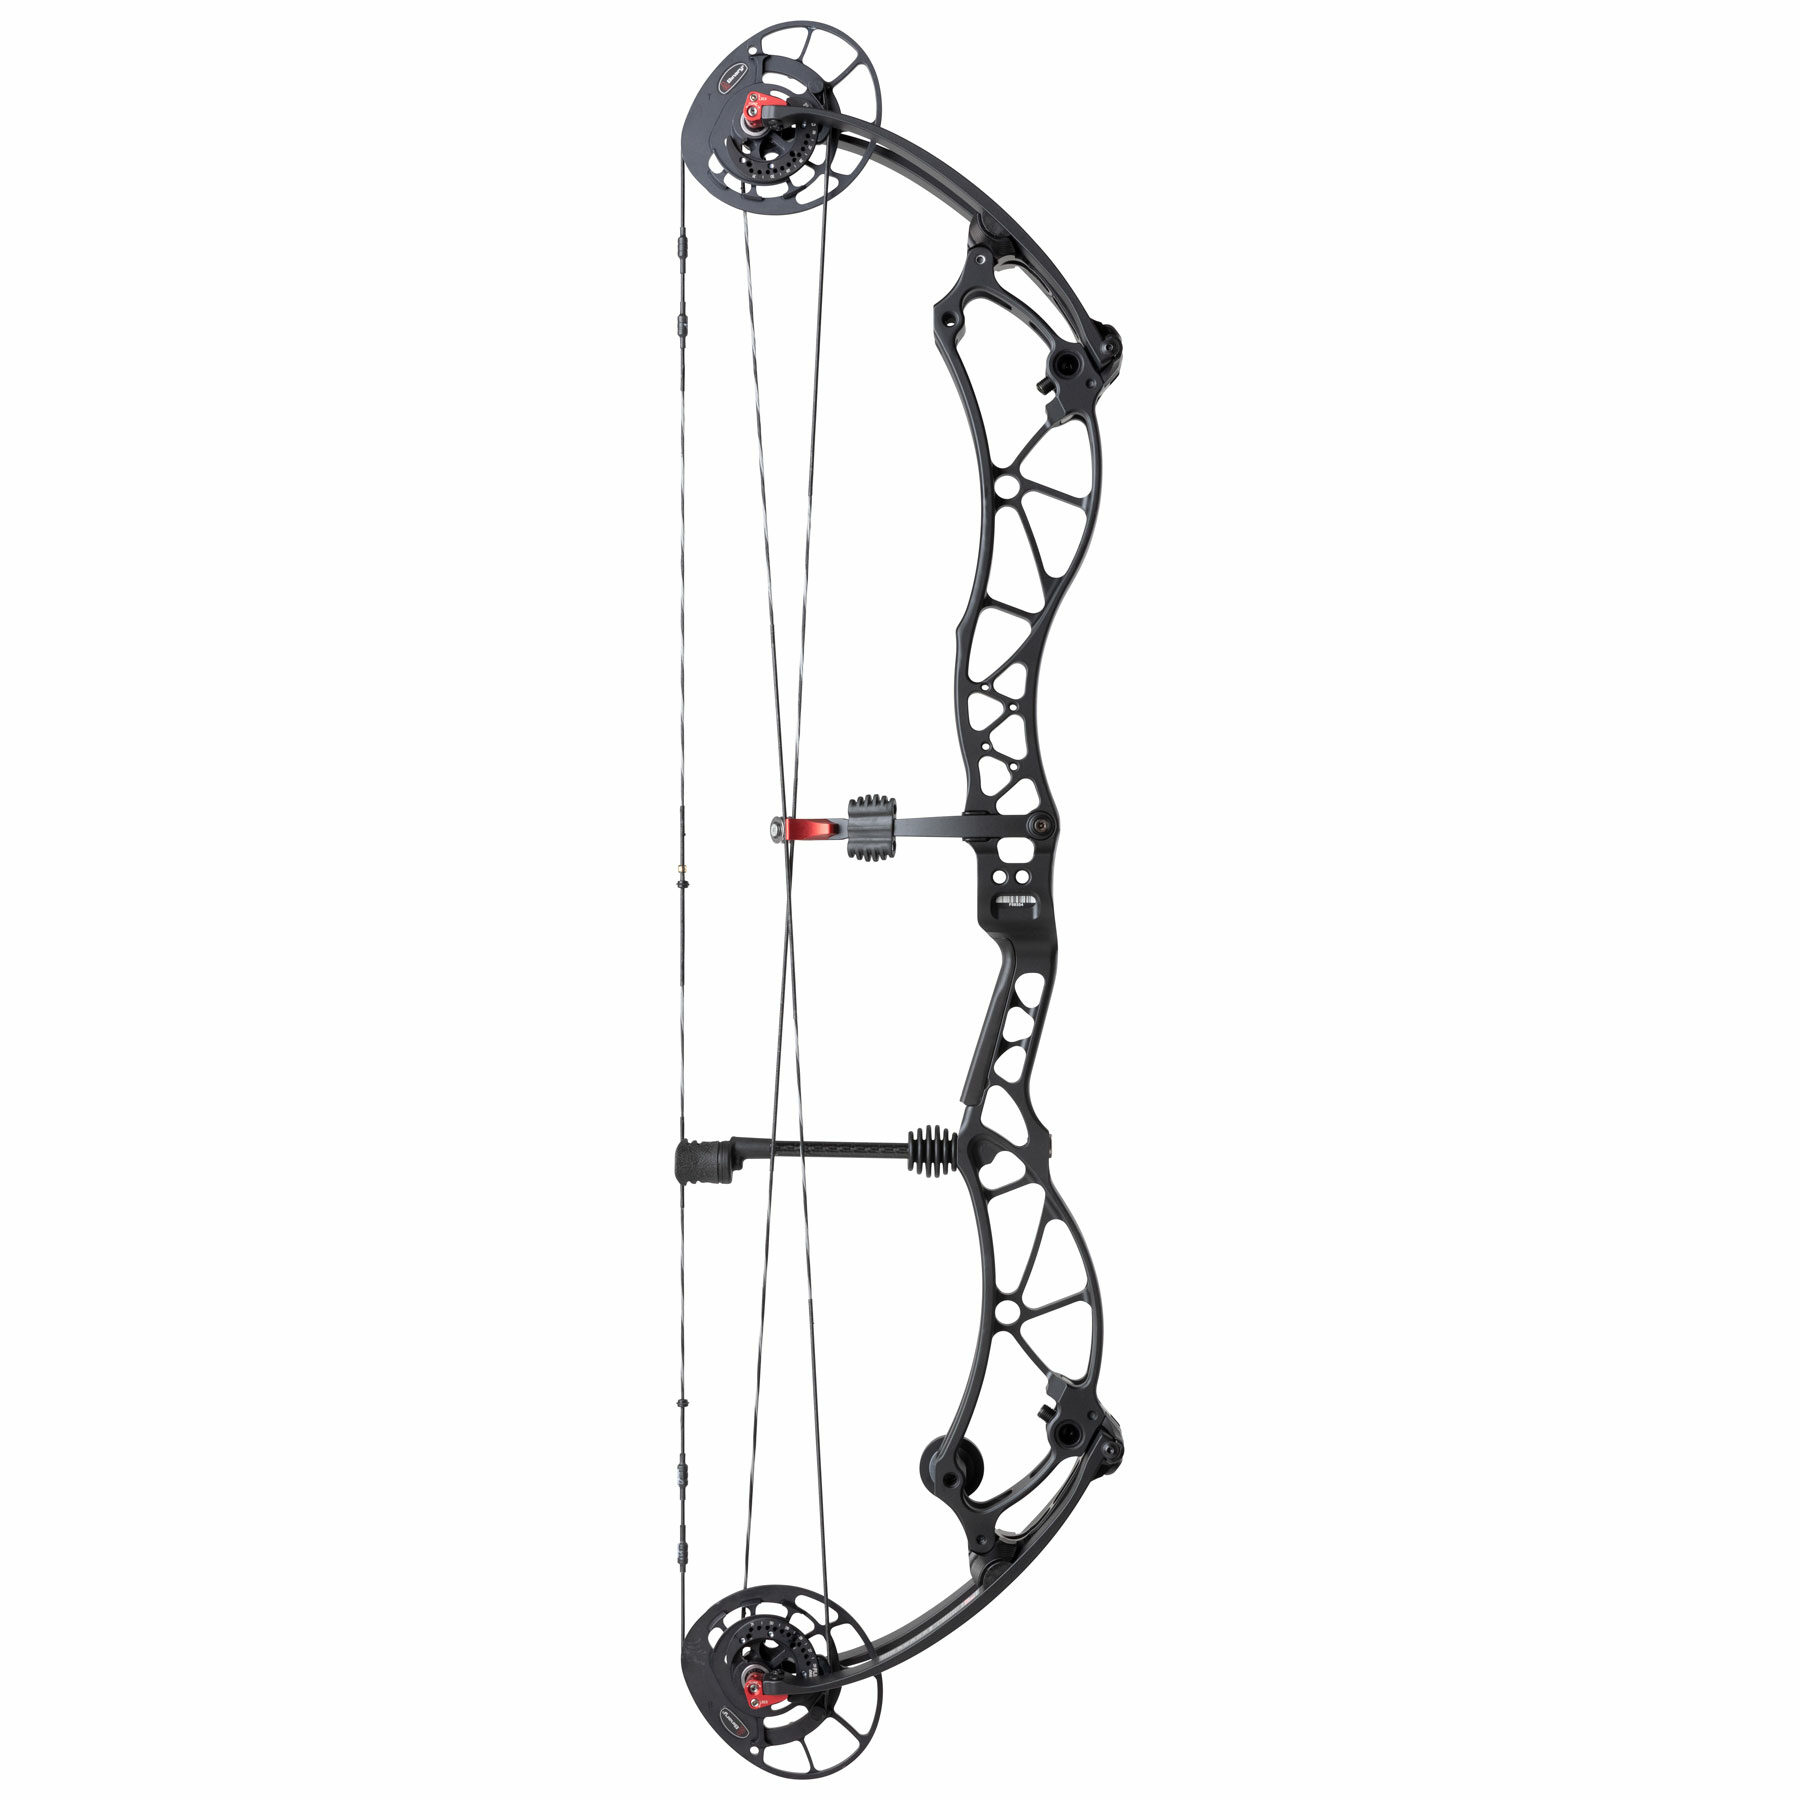 Reckoning black archery compound bow